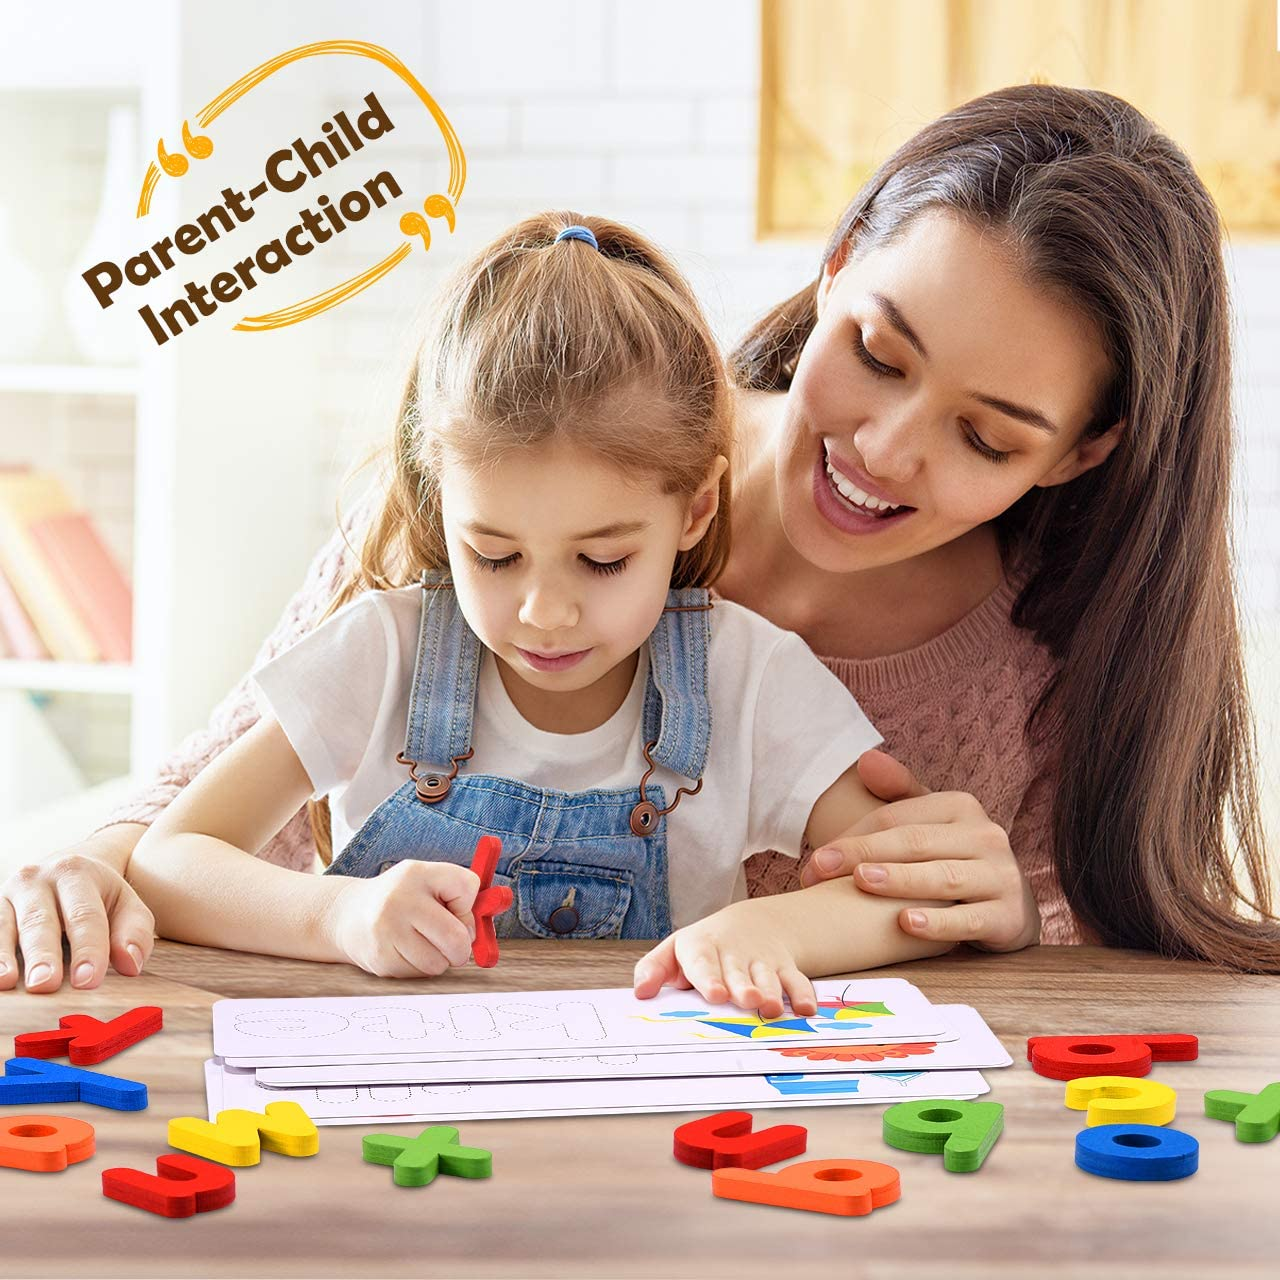 DreamToy Spelling Games for Kids Best Gifts